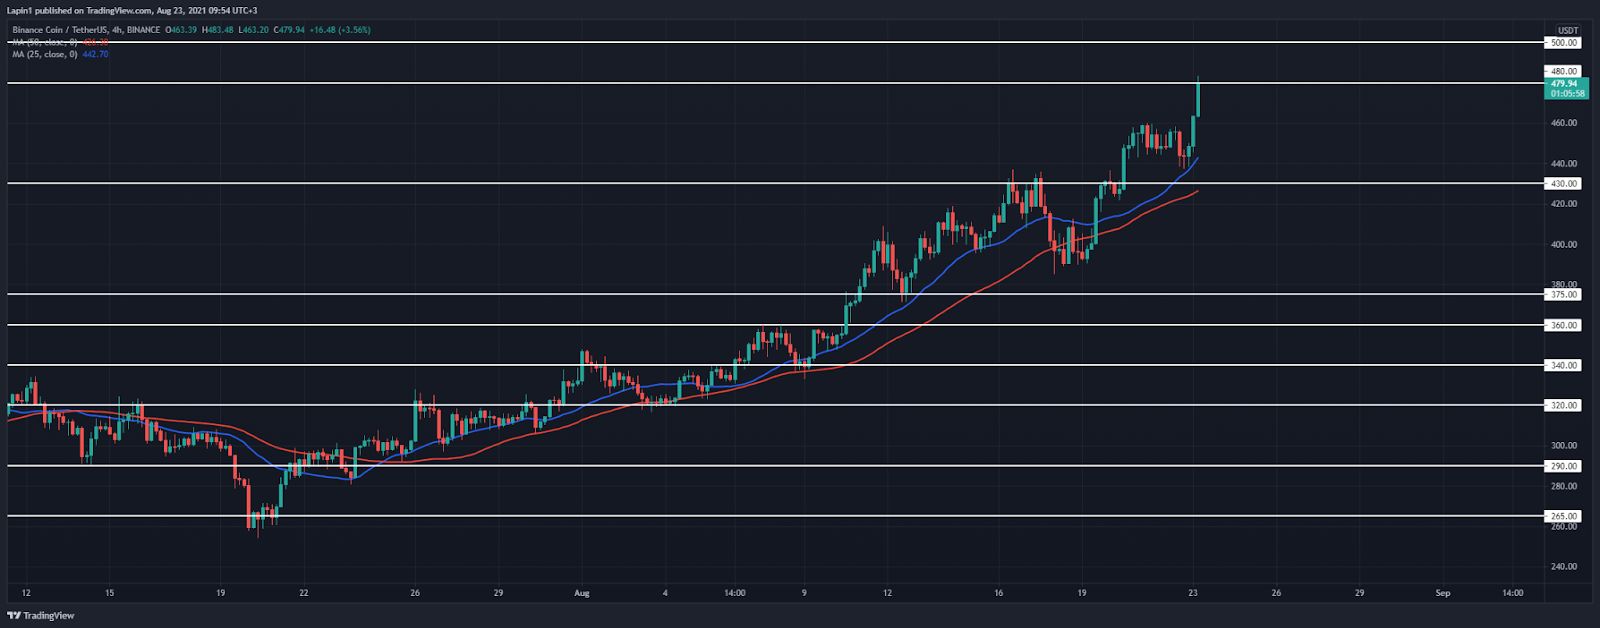 Binance Coin Price Analysis: BNB spikes to $480, set for further upside this week?